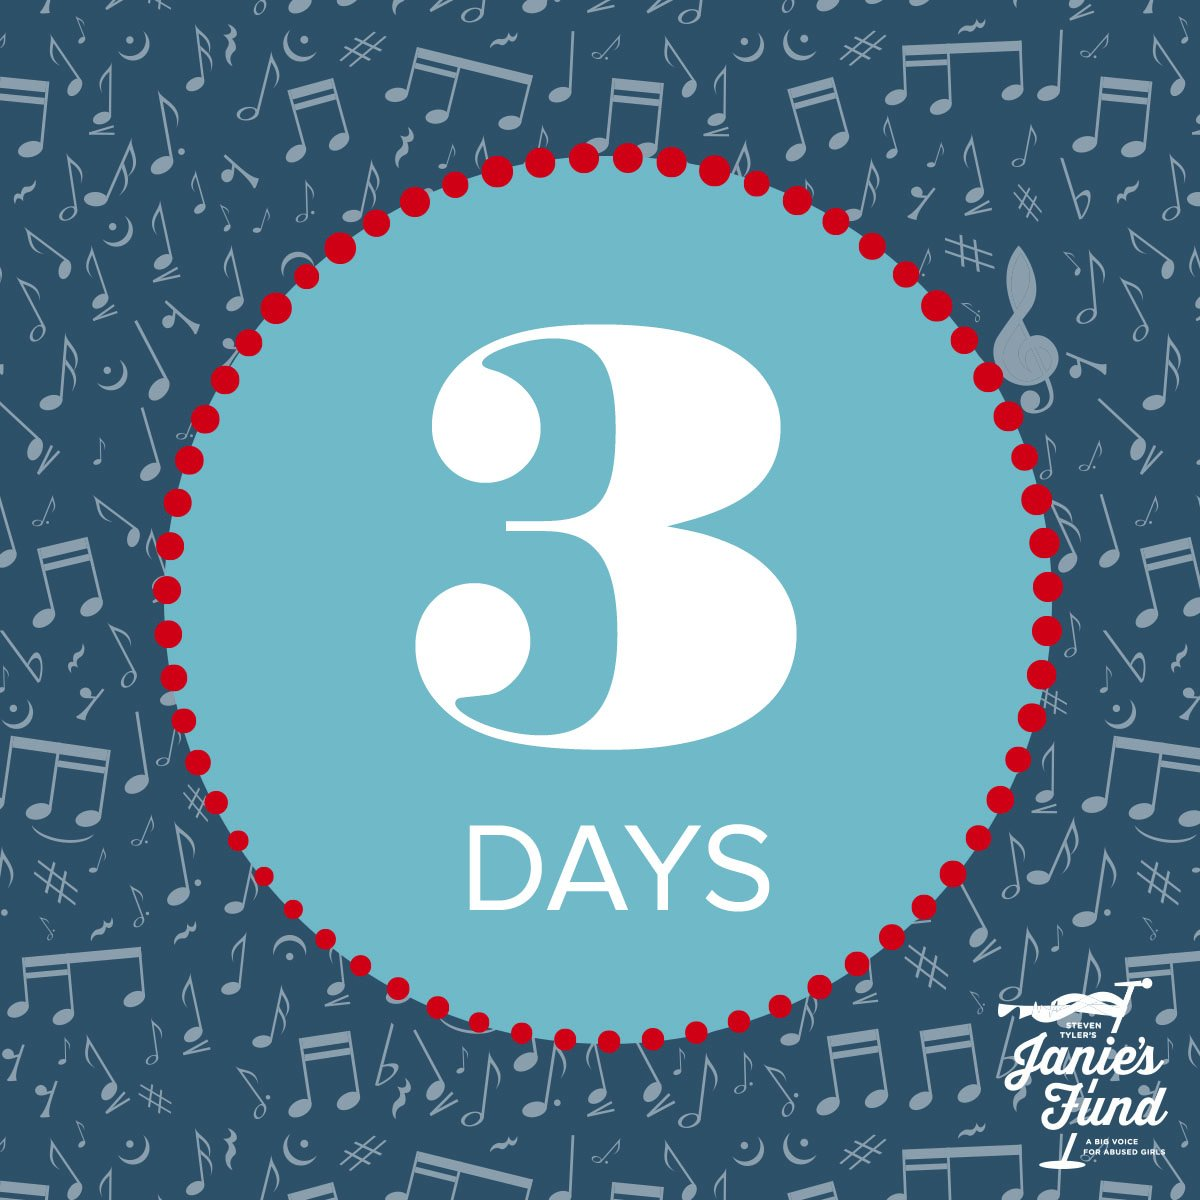 Janies Fund On Twitter Only 3 Days Until At Iamstevents Inaugural